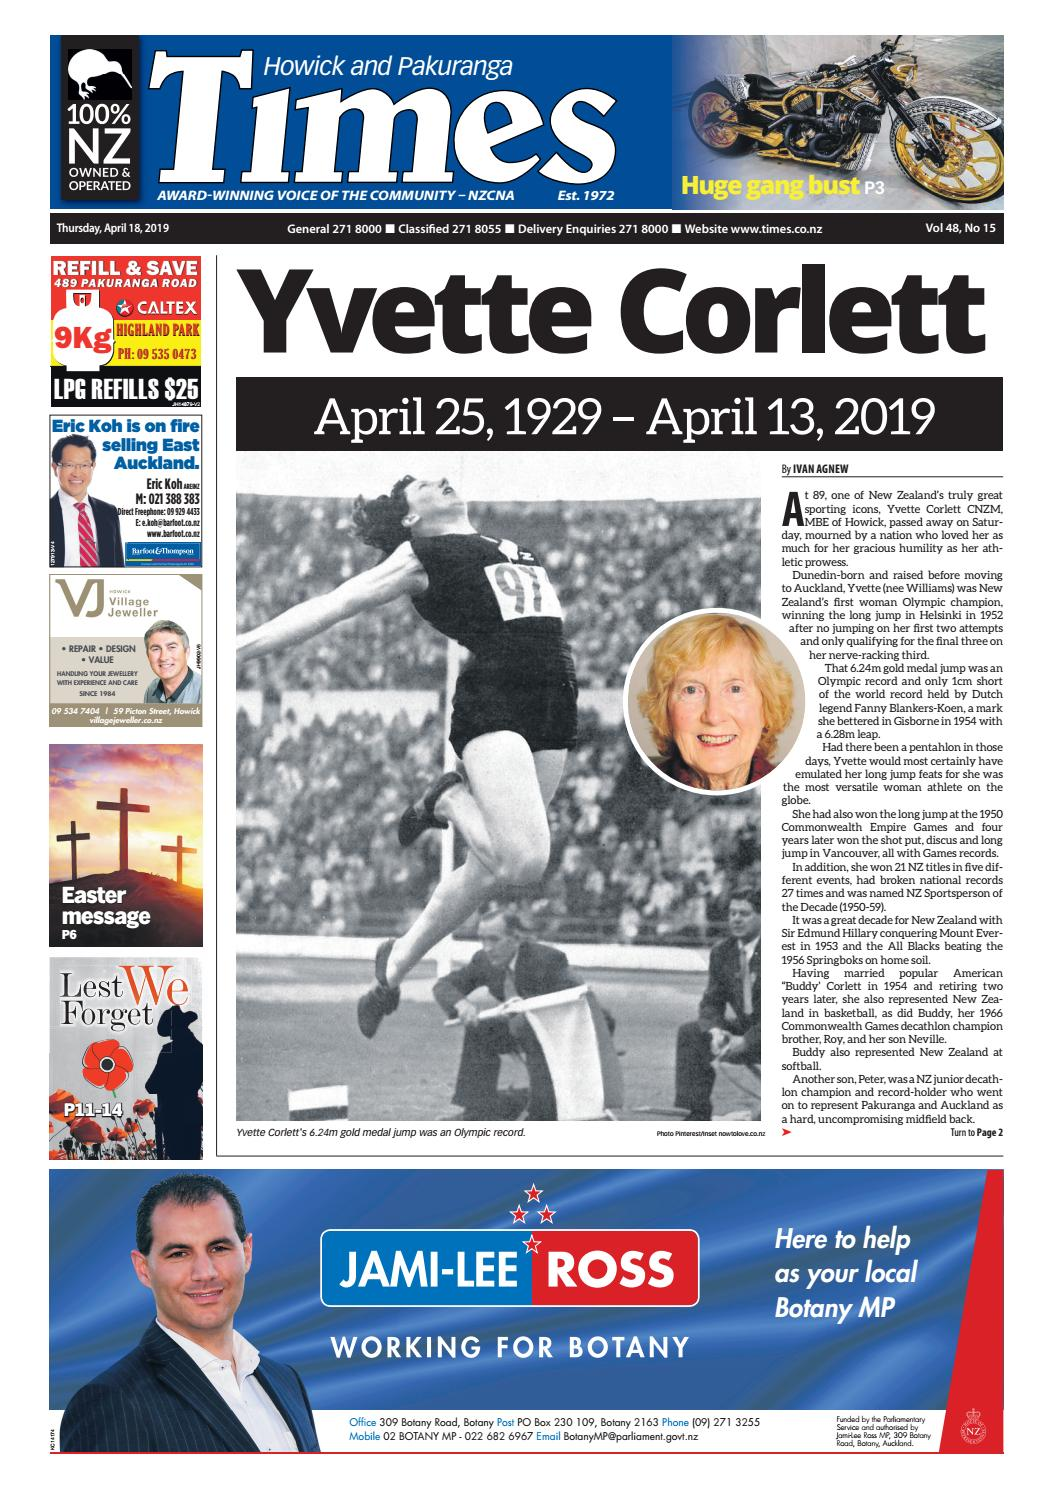 Howick and Pakuranga Times, April 18, 2019 by Times Media - issuu